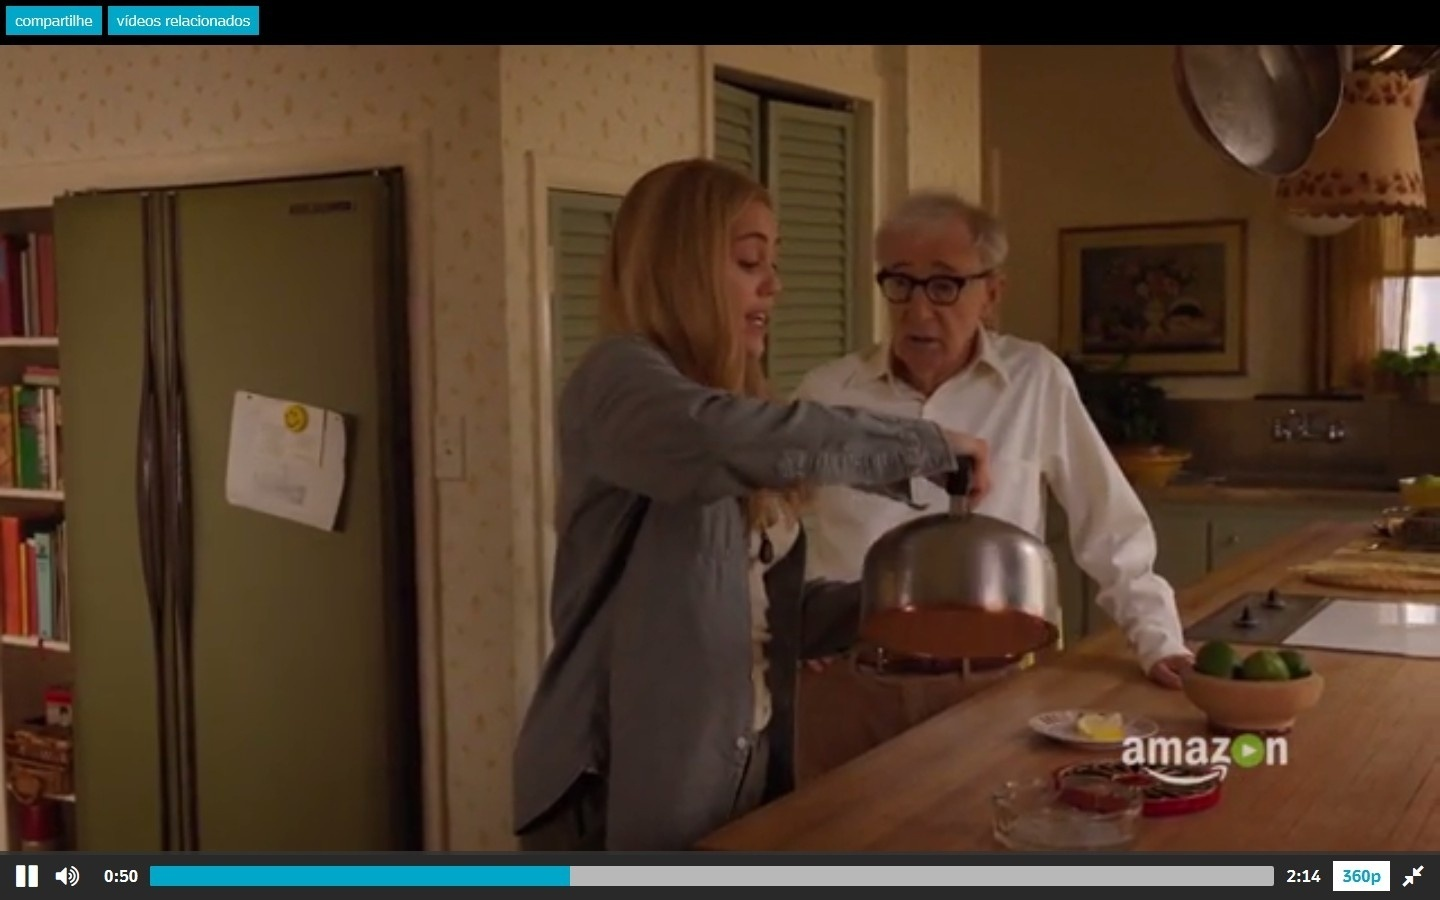 2016 - Miley Cyrus e Woody Allen no trailer da série